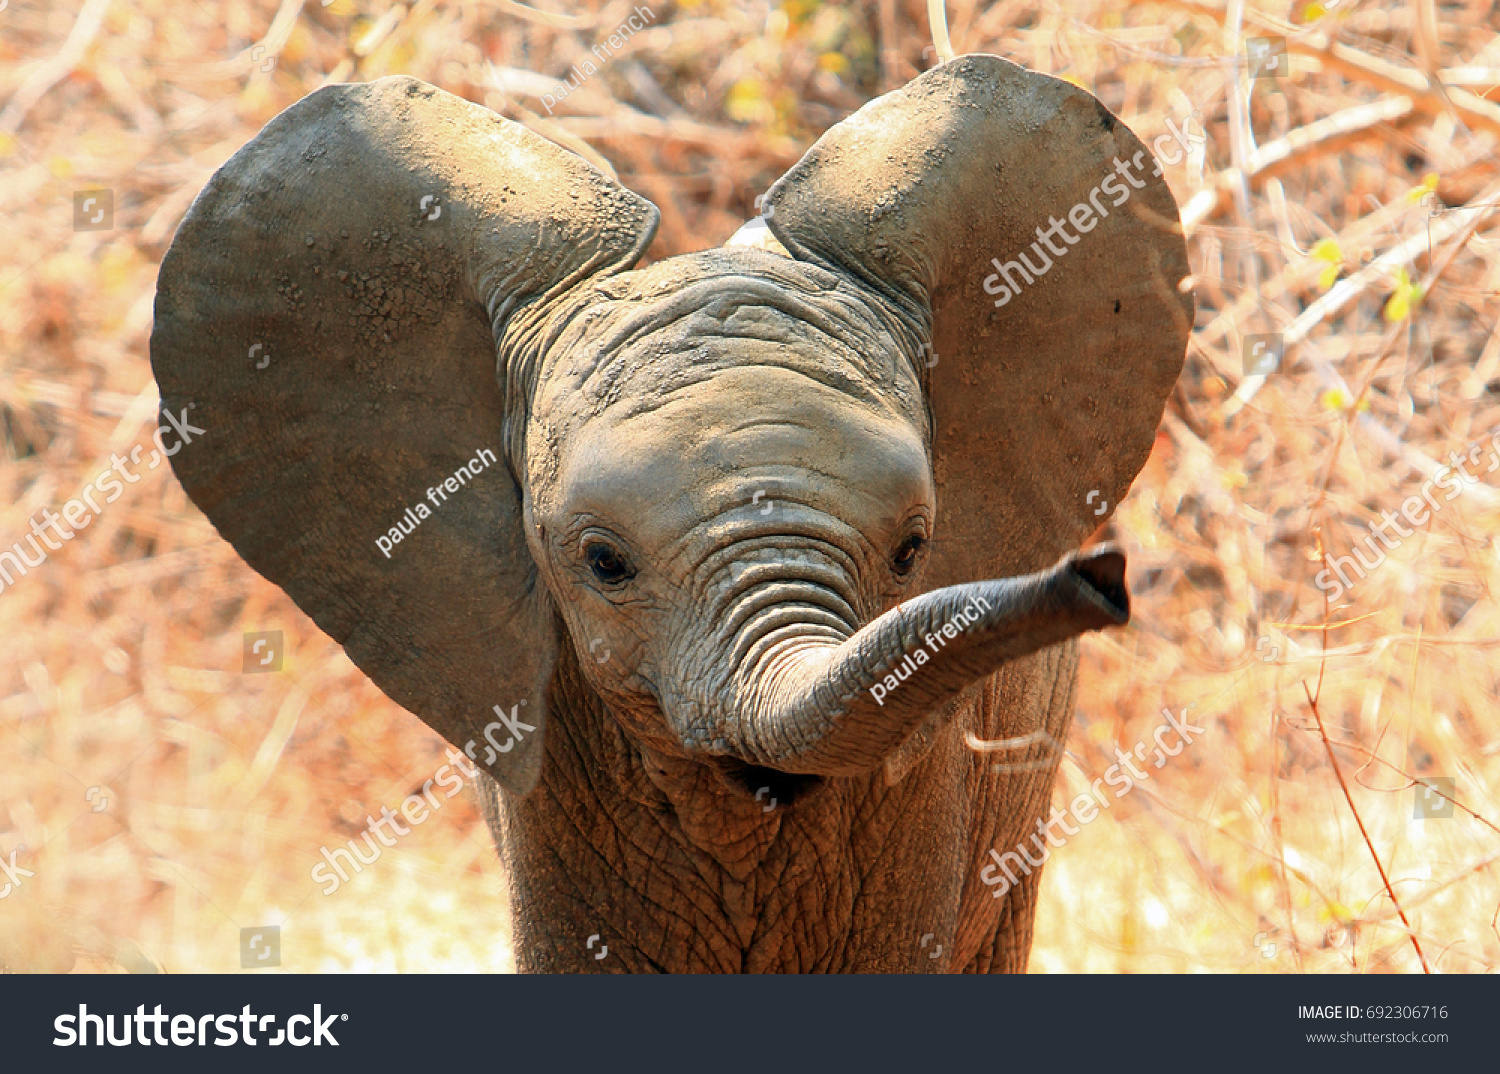 An adorable baby African Elephant with ears flapping and trunk extended in South Luangwa National Park, Zambia.  Motion blur is visible on the tip of the trunk